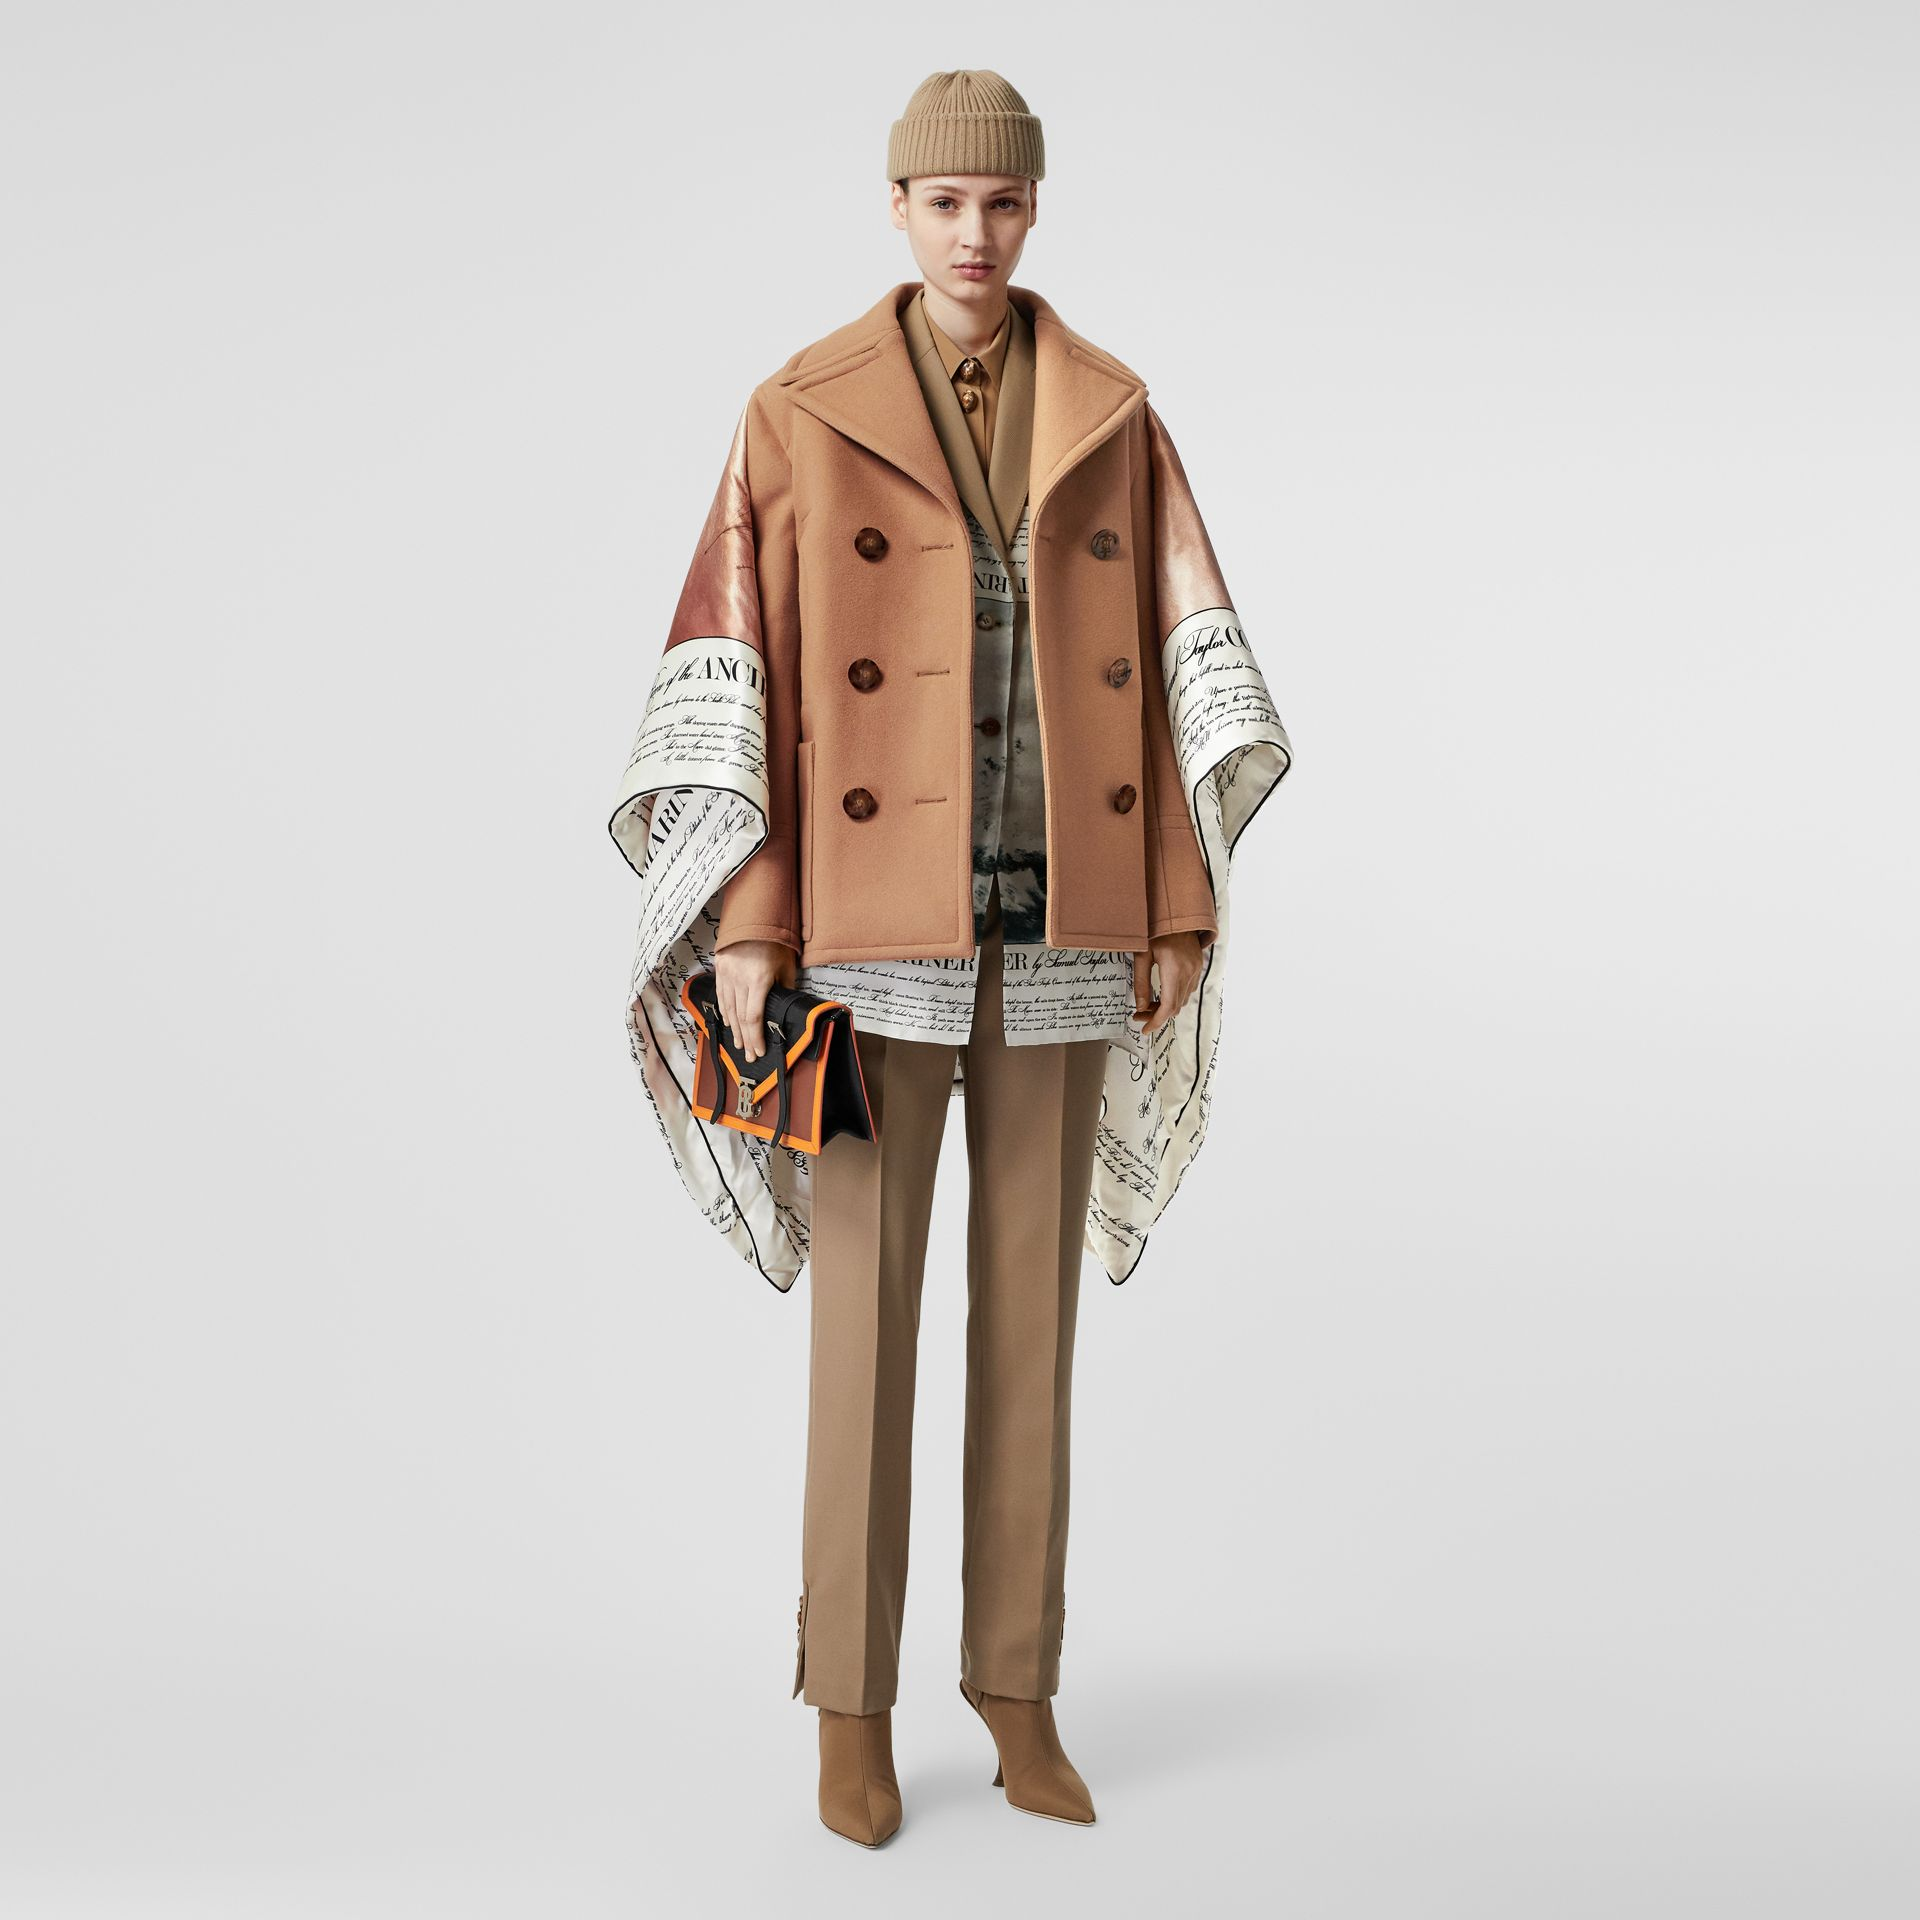 Mariner Print Blanket Detail Technical Wool Pea Coat in Warm Camel - Women | Burberry - gallery image 6